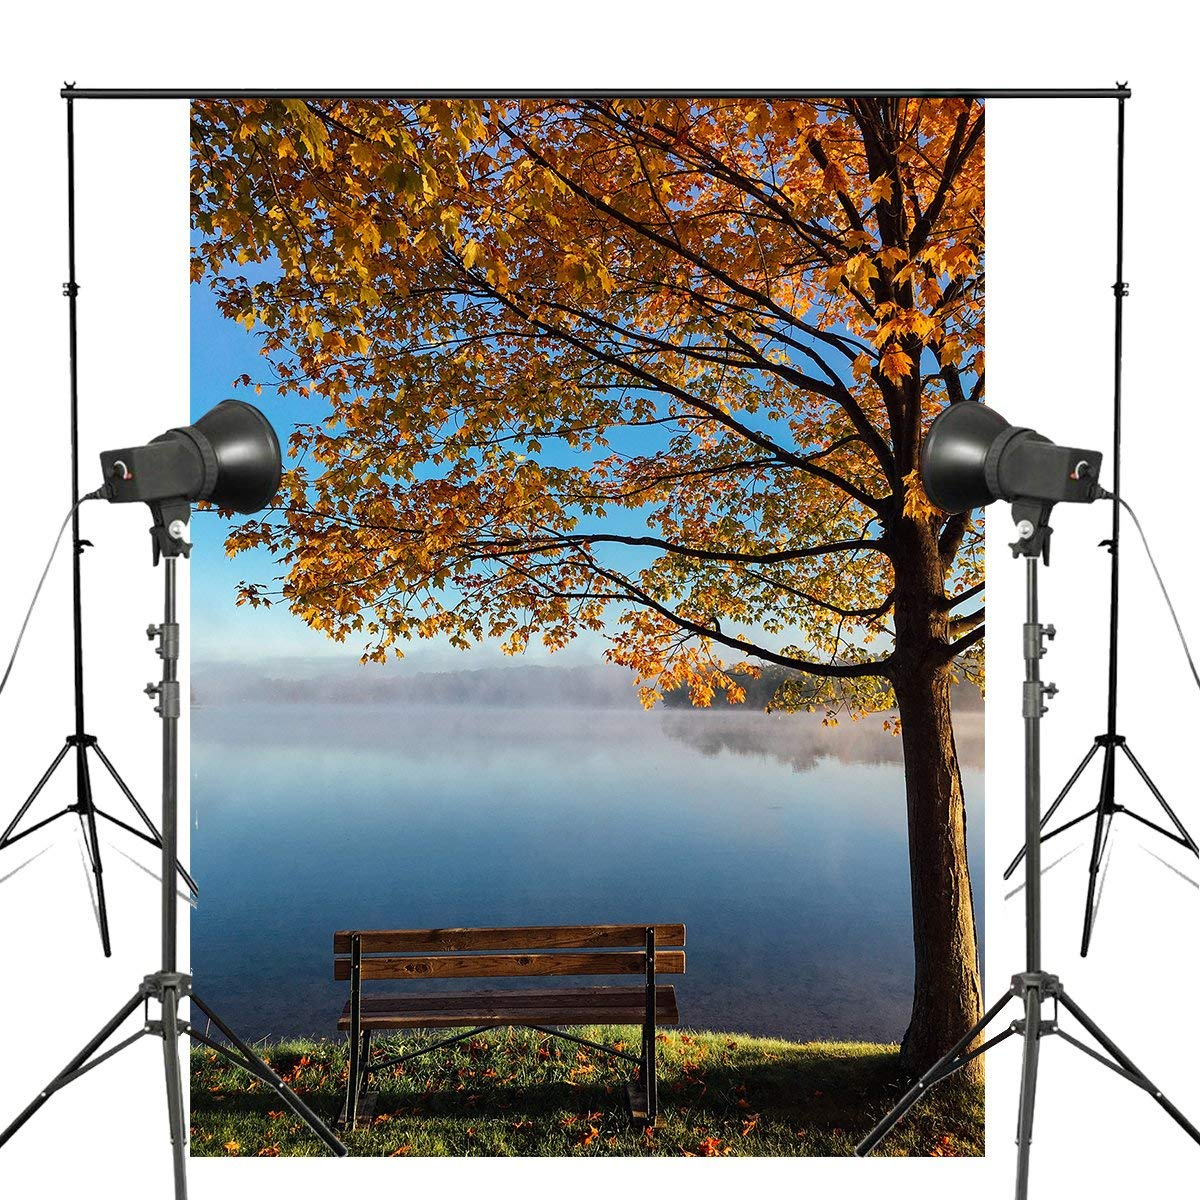 Autumn Fall Maple Trees Photography Background 150x220cm Giant Wall Mural Landscape Scenery Backdrop Studio Props